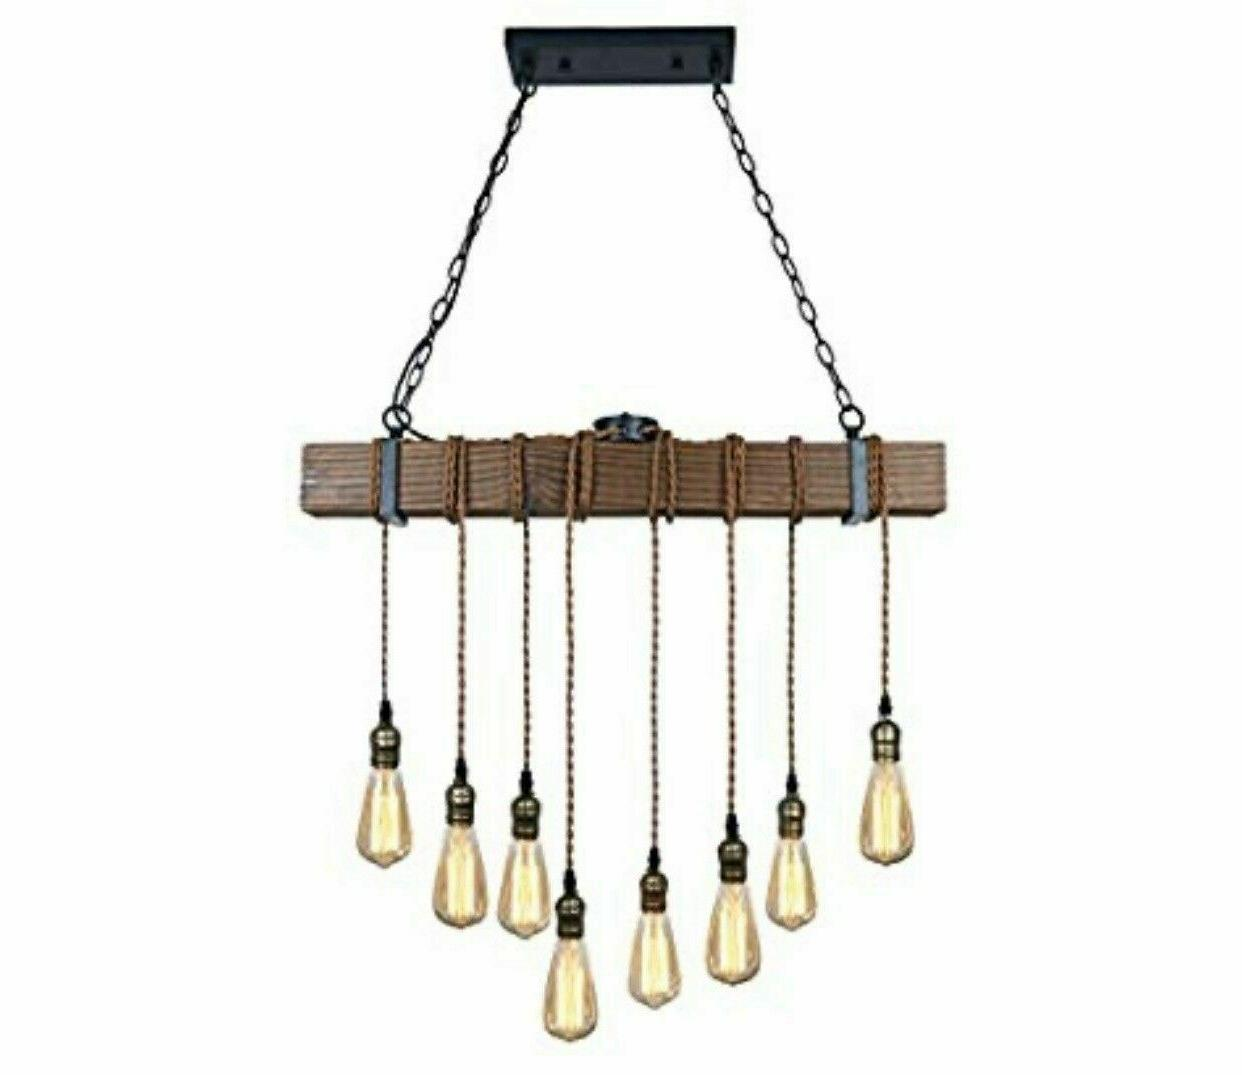 Unitary Brand Rustic Black Wood Hanging Multi Pendant Light